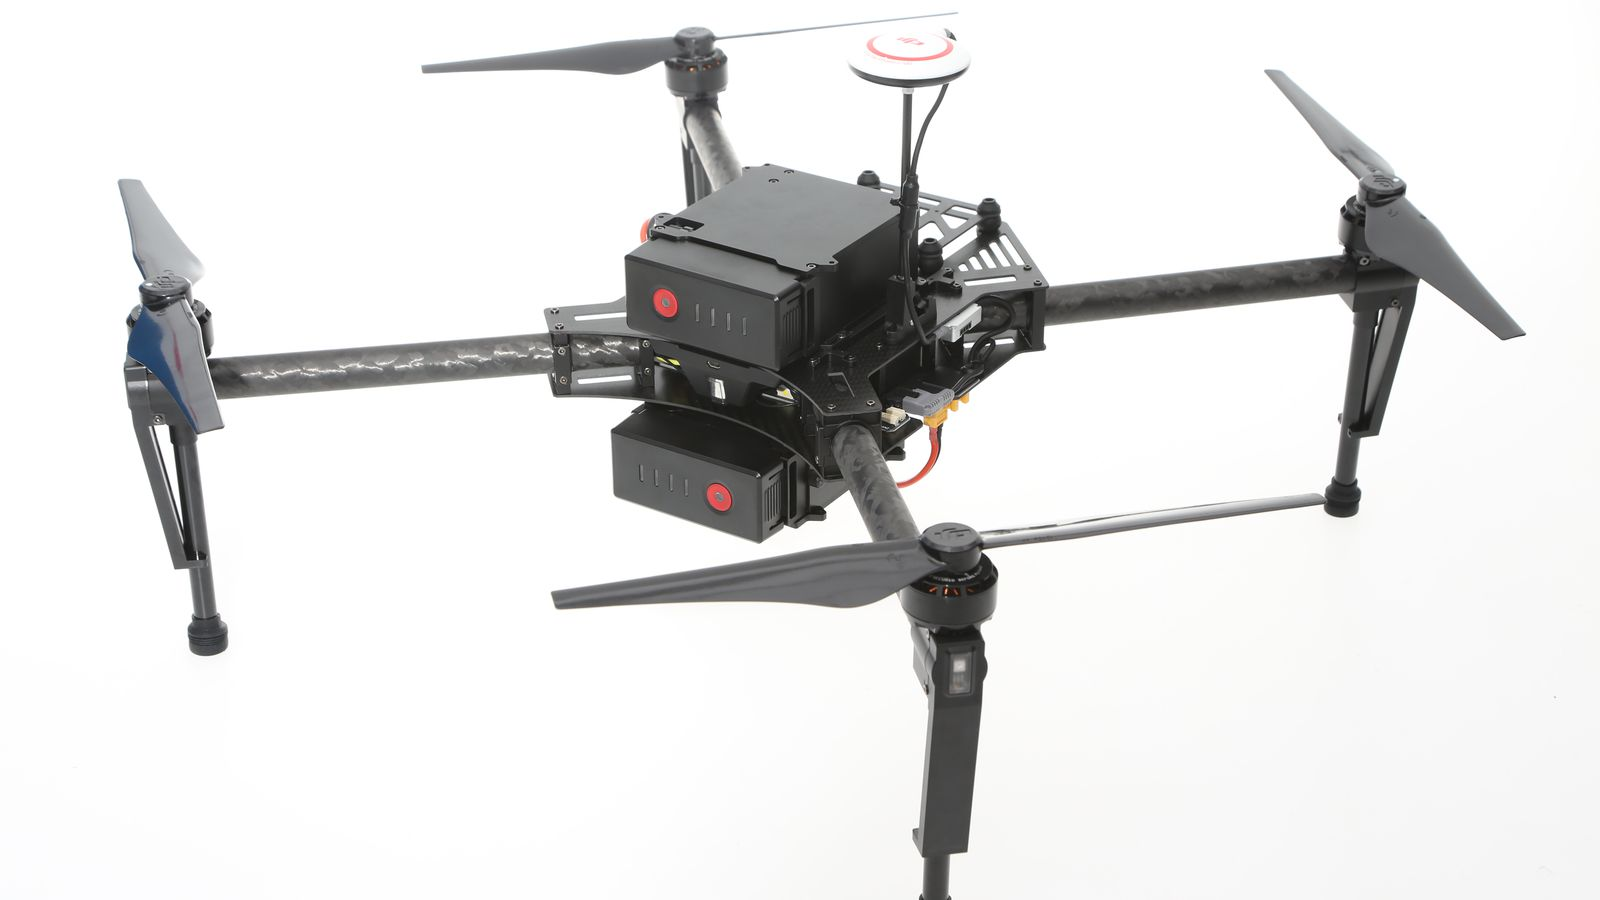 Dji Just Released Its First Drone That Can See And Avoid